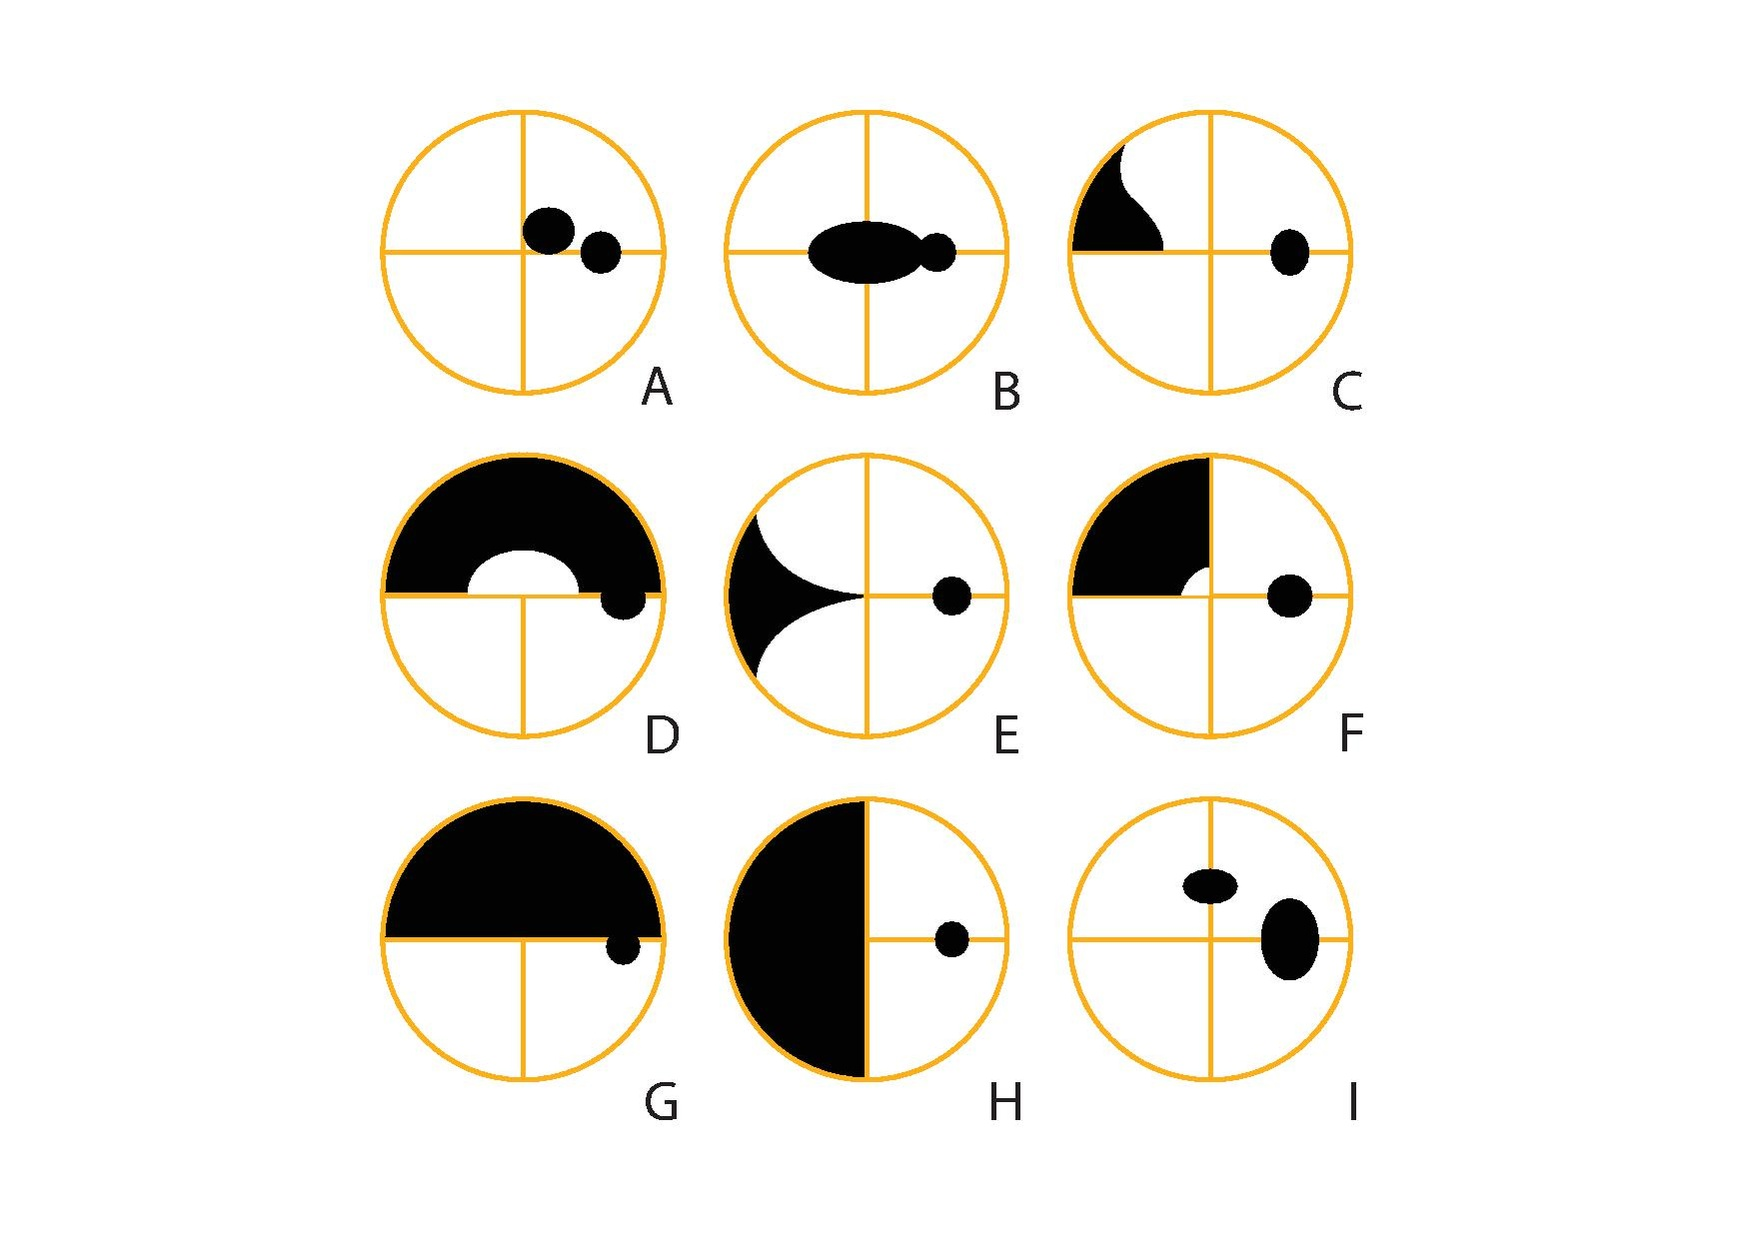 Humphrey visual field analyser wikipedia figure 5 types of visual field defects right eye a central scotoma b centrocaecal scotoma c nasal step d superior arcuate e nasal wedge defect nvjuhfo Gallery